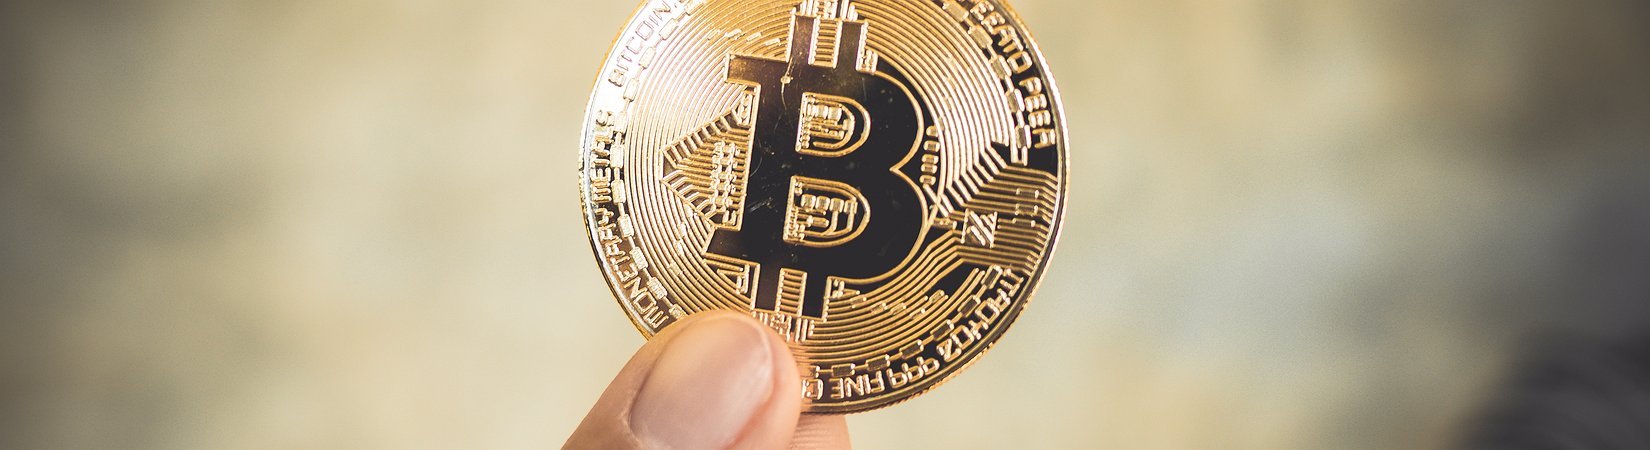 Bitcoin Market Share Lowest Ever at 36%